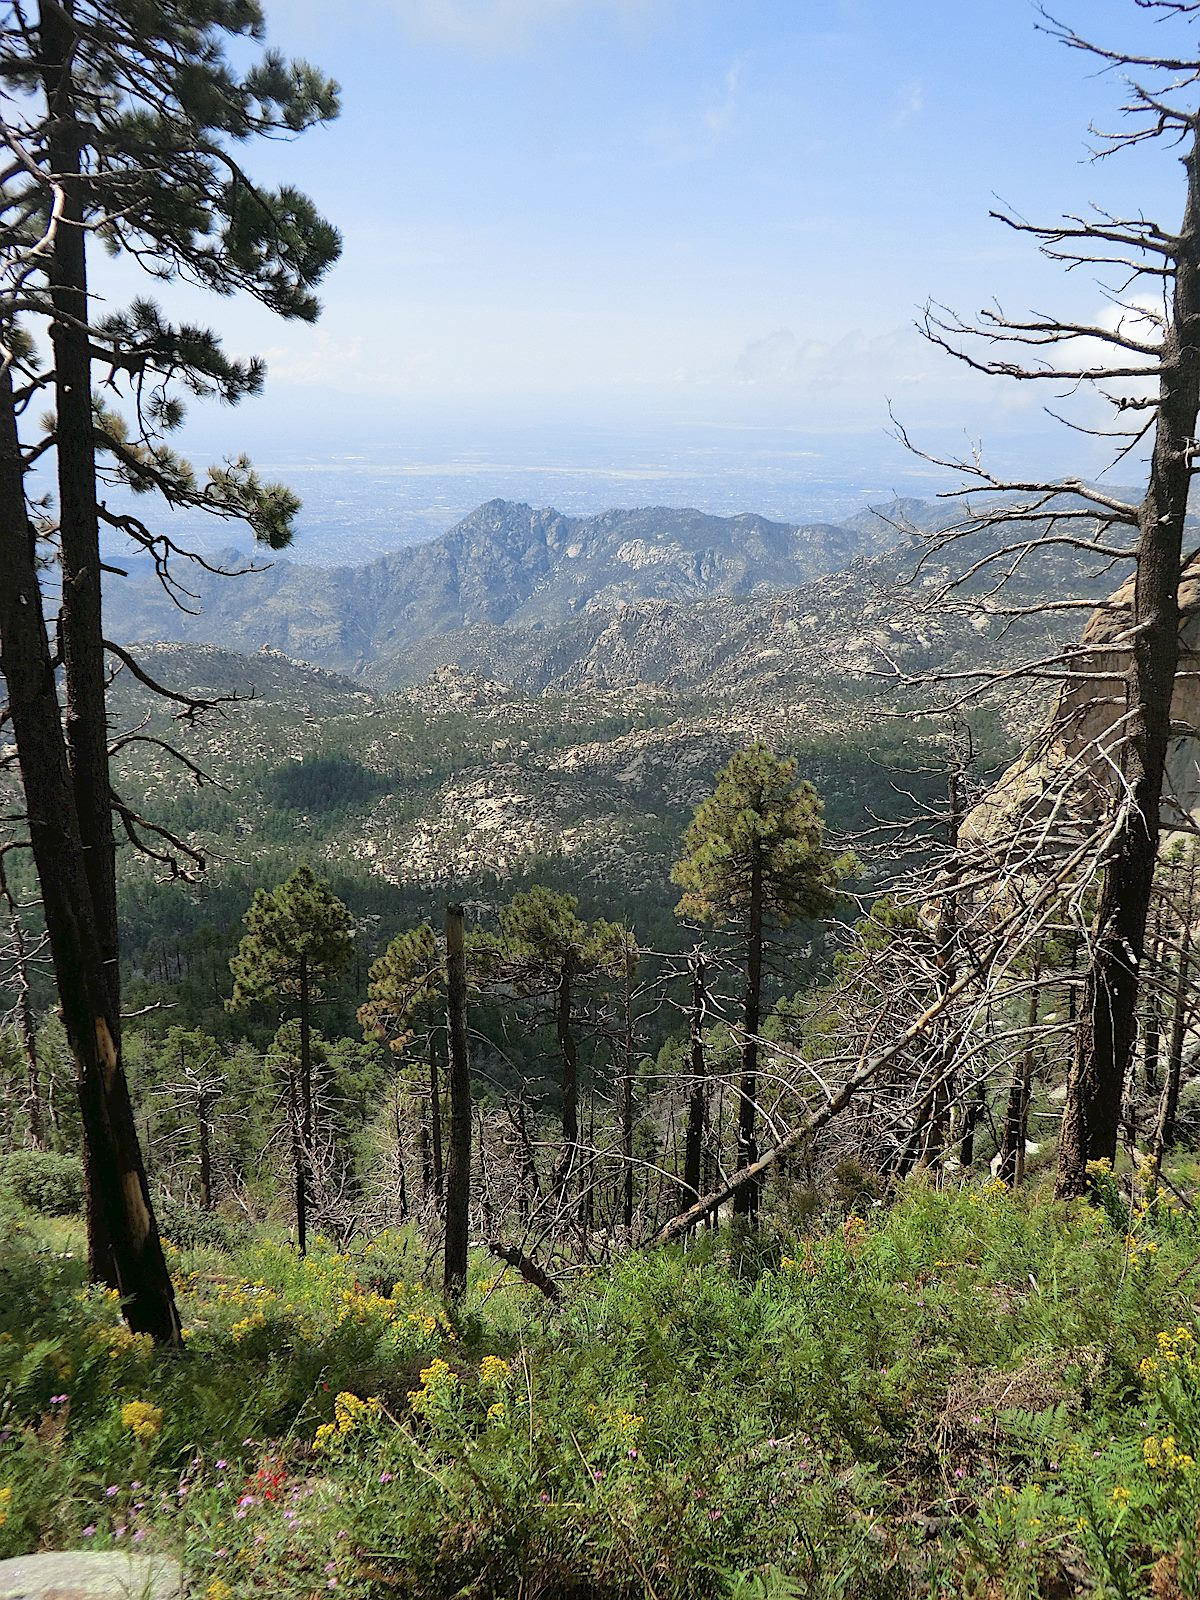 A view from the Lemmon Rock Trail. August 2012.